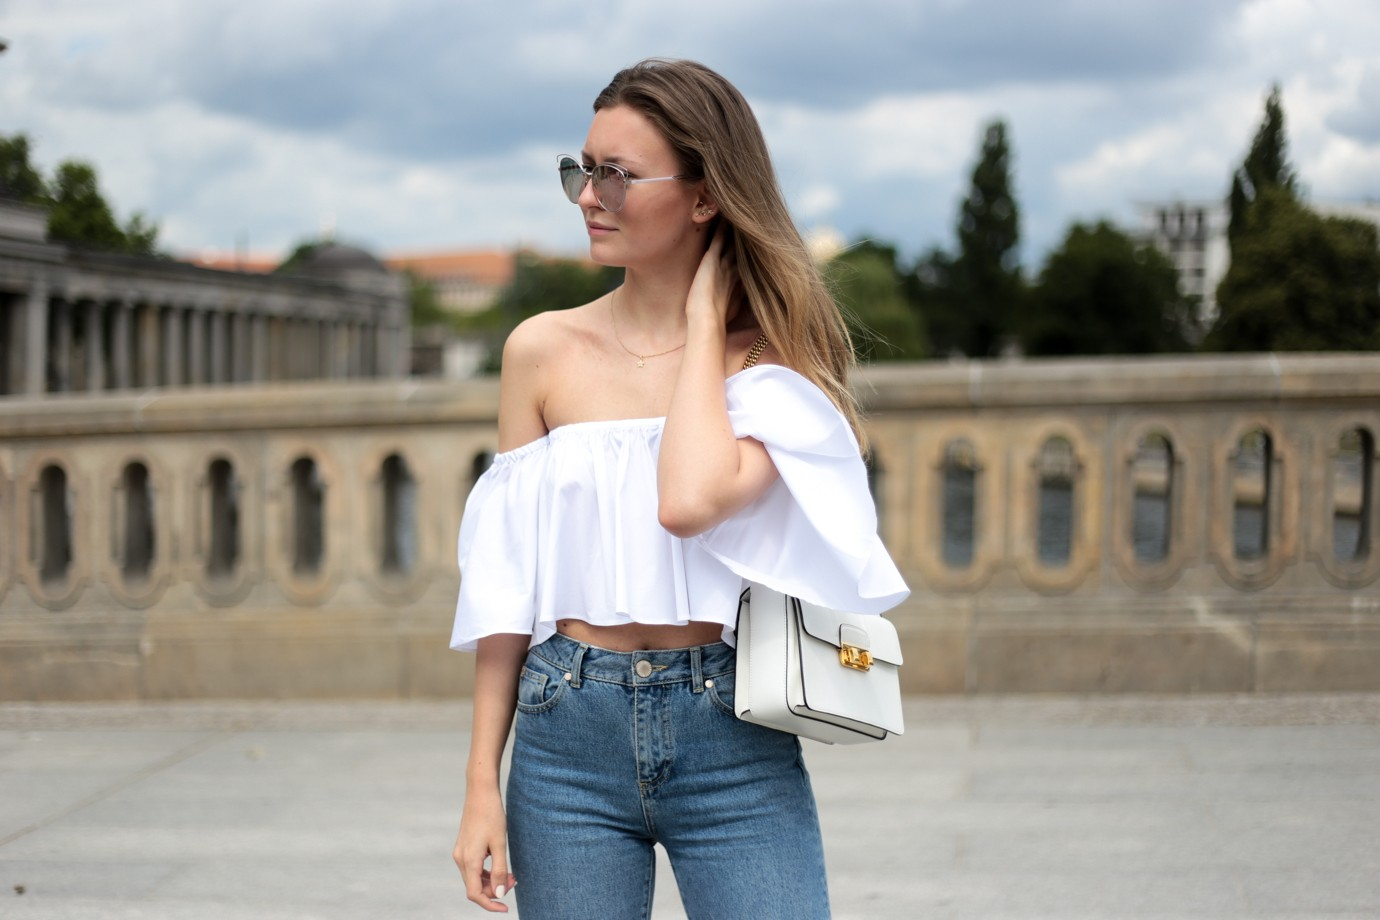 Carmen Top, Mom Jeans & Chanel Pumps